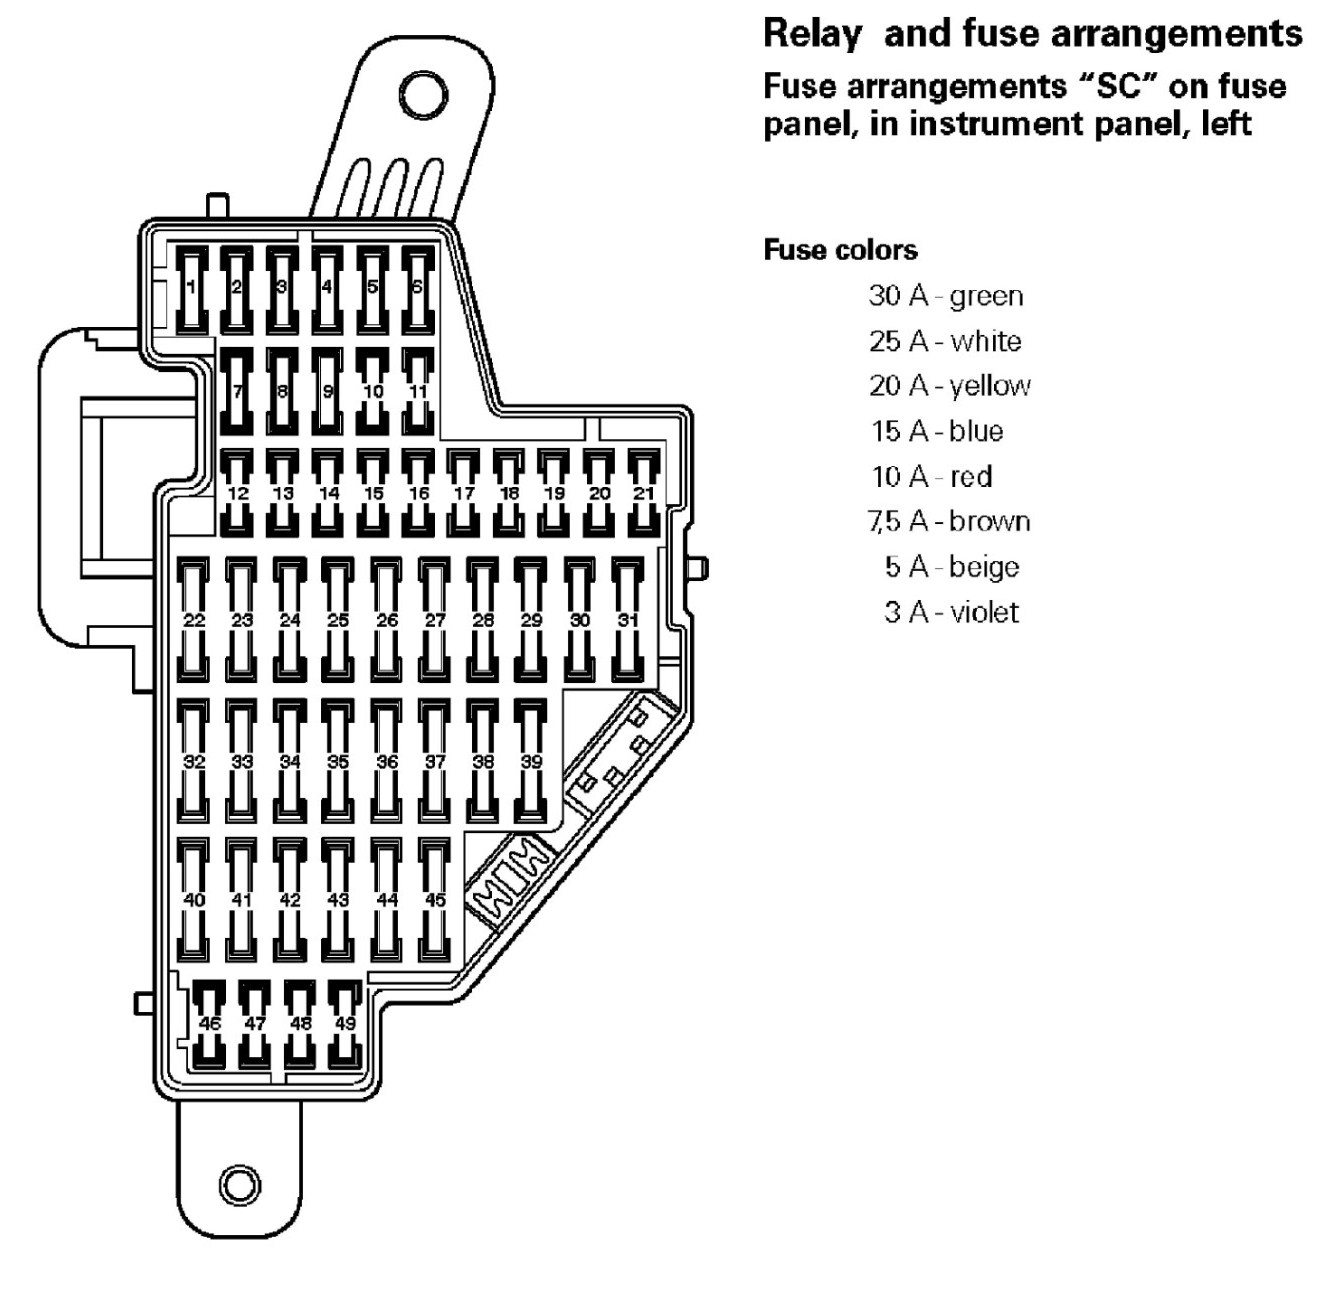 hight resolution of vw jetta 2006 fuse box diagram wiring diagram expert 2006 vw gli fuse diagram 2006 vw gli fuse diagram